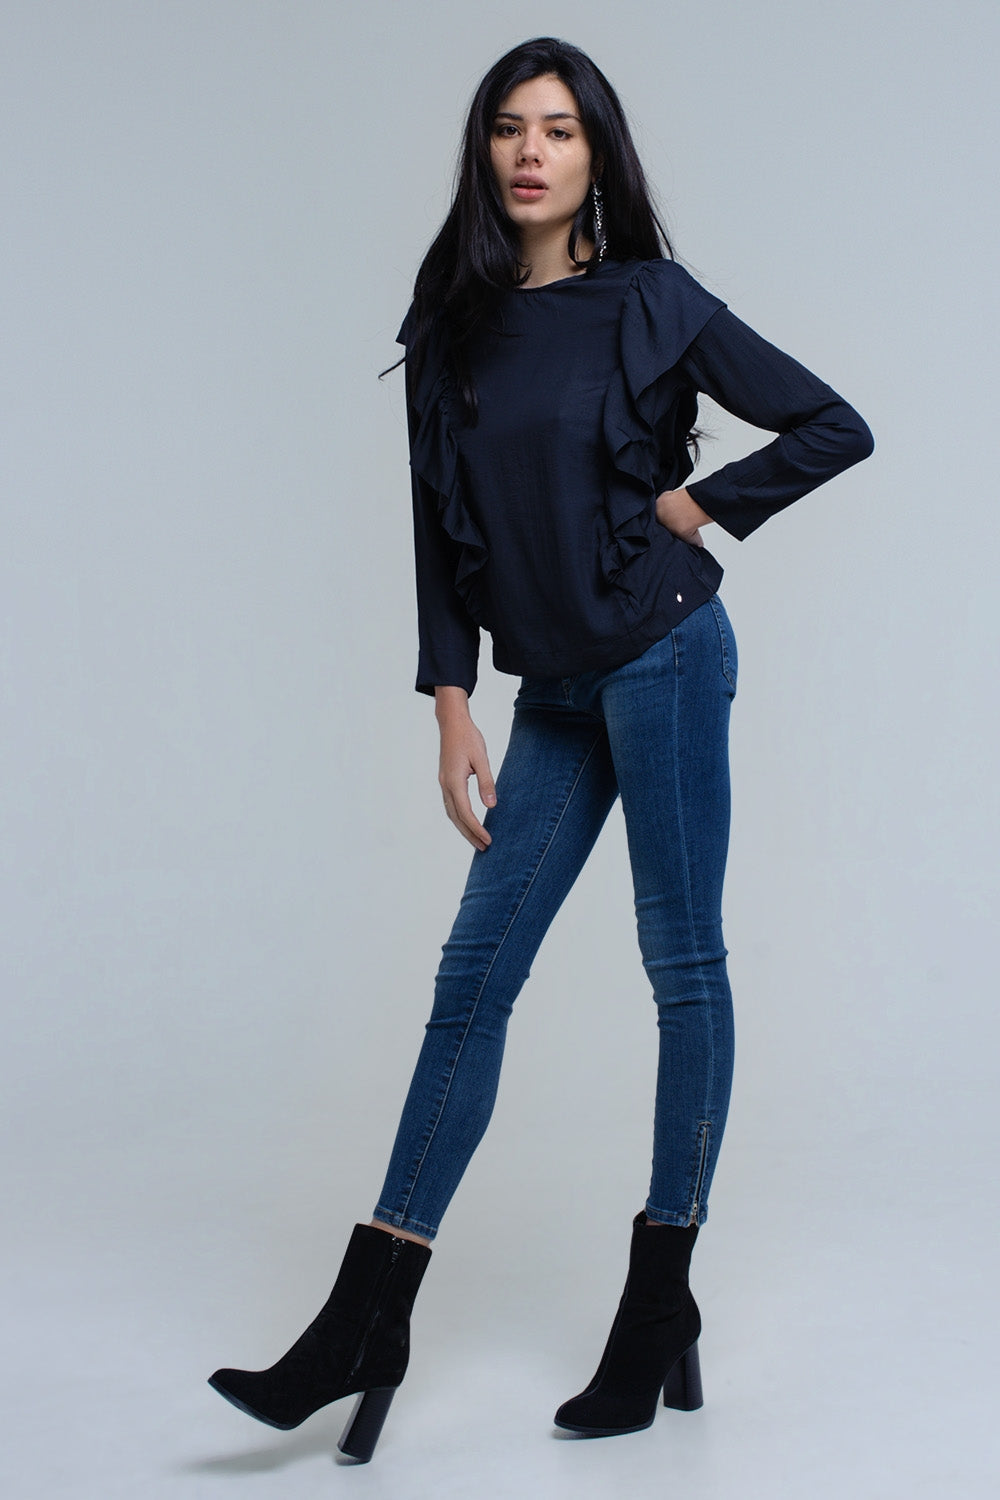 Top With Ruffle Detail In Navy-Women - Apparel - Shirts - Blouses-Product Details Top in soft fabric in navy . It has a round neck with a ruffle detail at the front and the back. Feature open back detail with button closure.-Keyomi-Sook